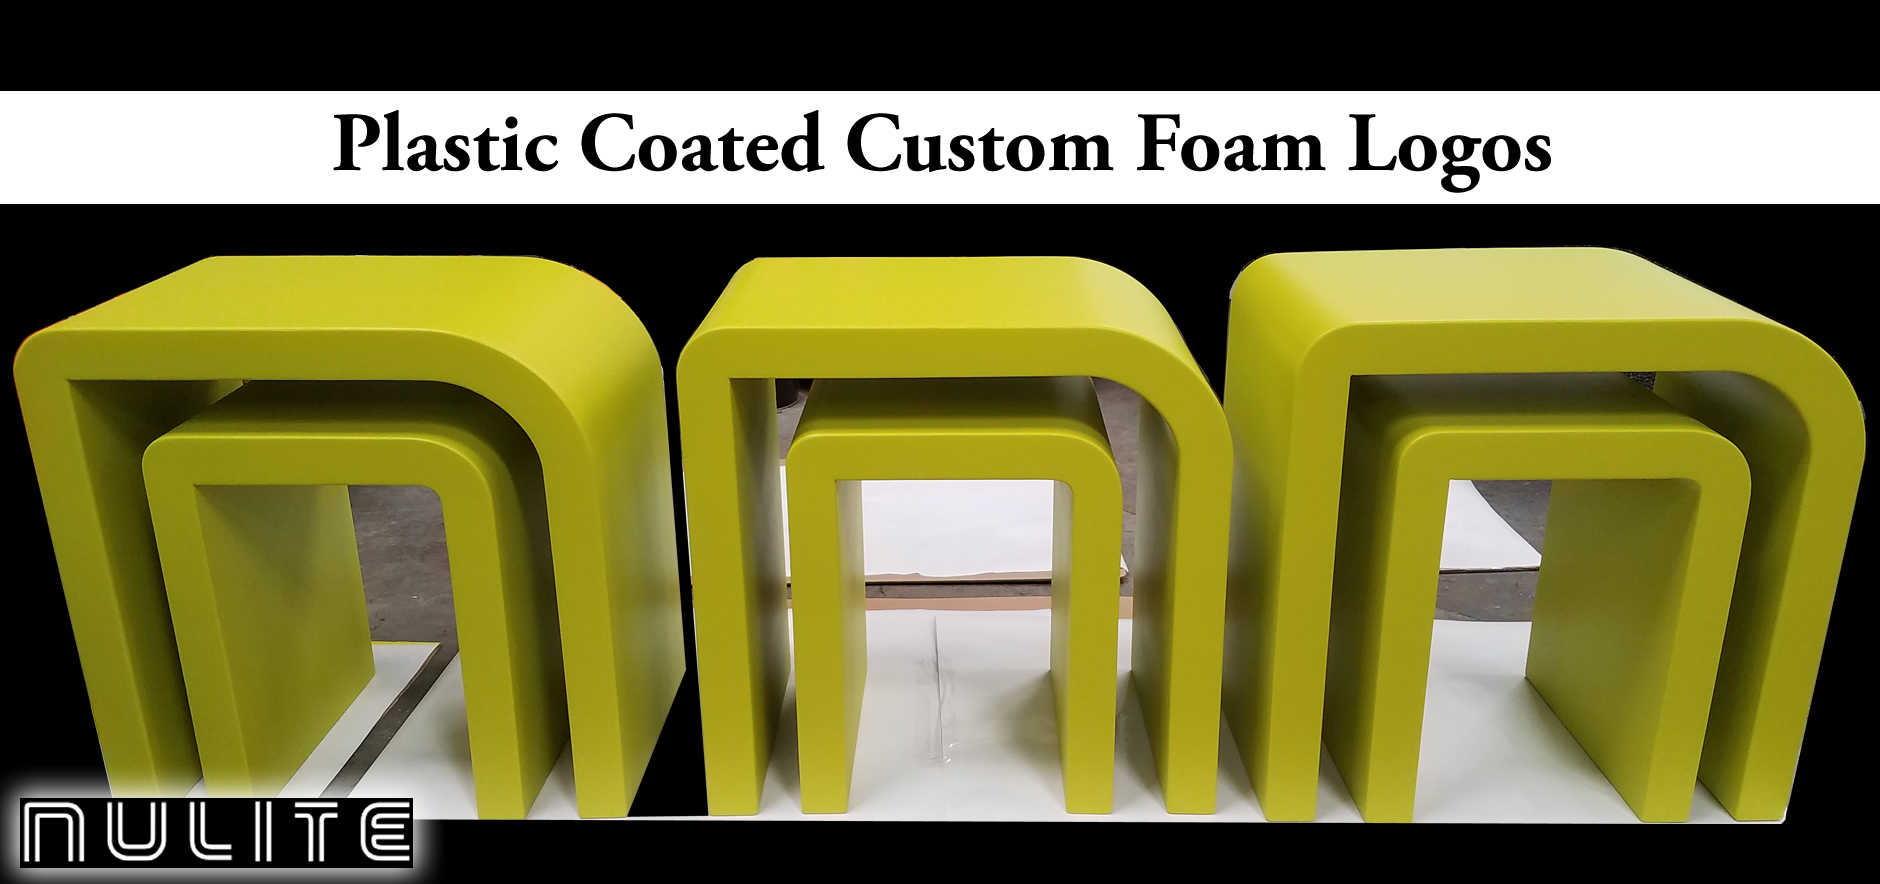 custom foam logo nulite lighting for tradeshows and corporate events